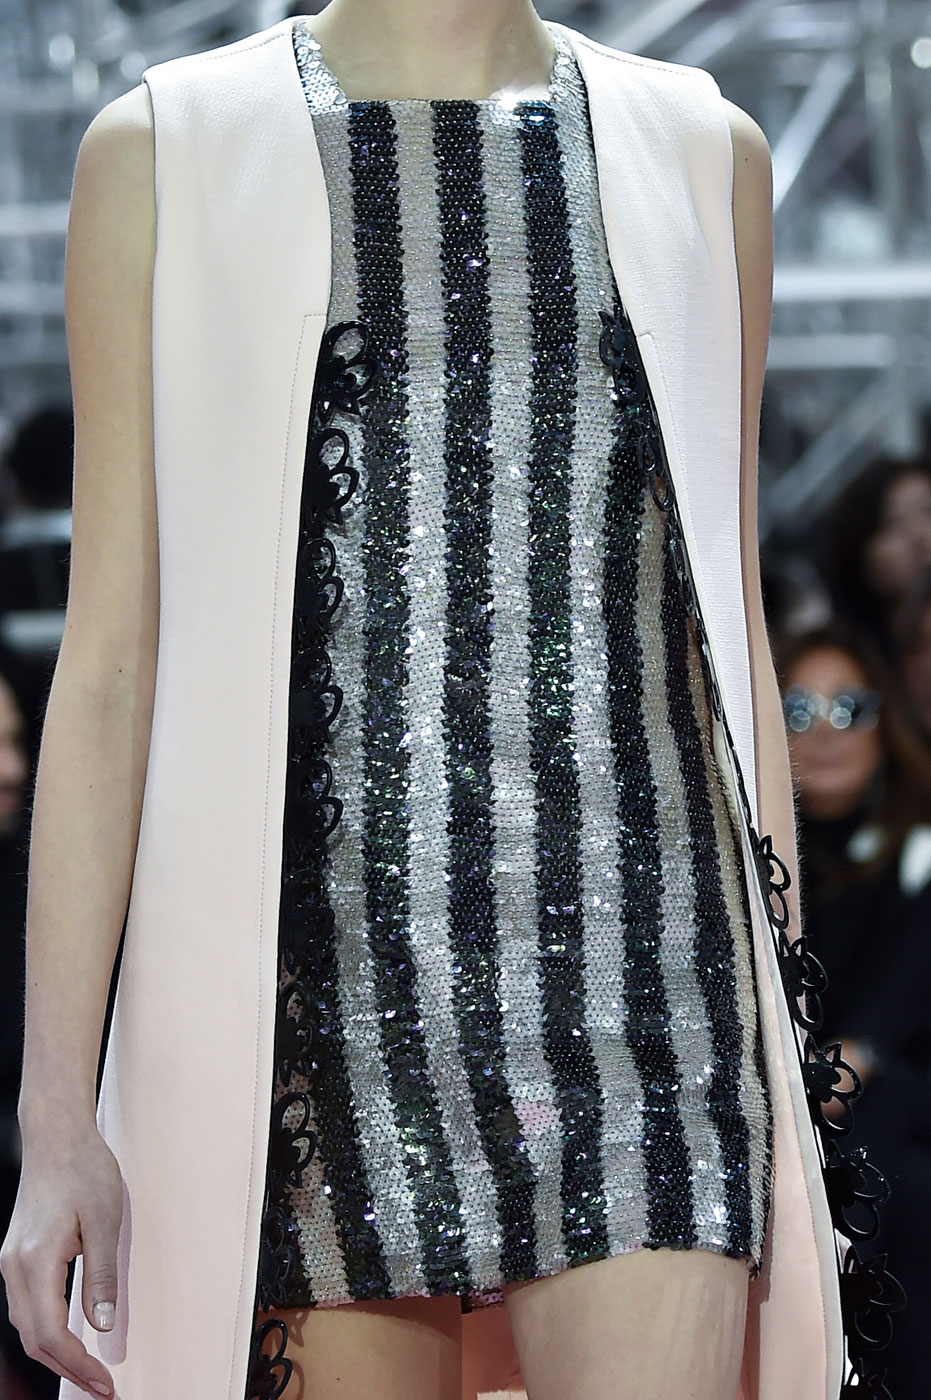 Christian-Dior-fashion-runway-show-close-ups-haute-couture-paris-spring-summer-2015-the-impression-119